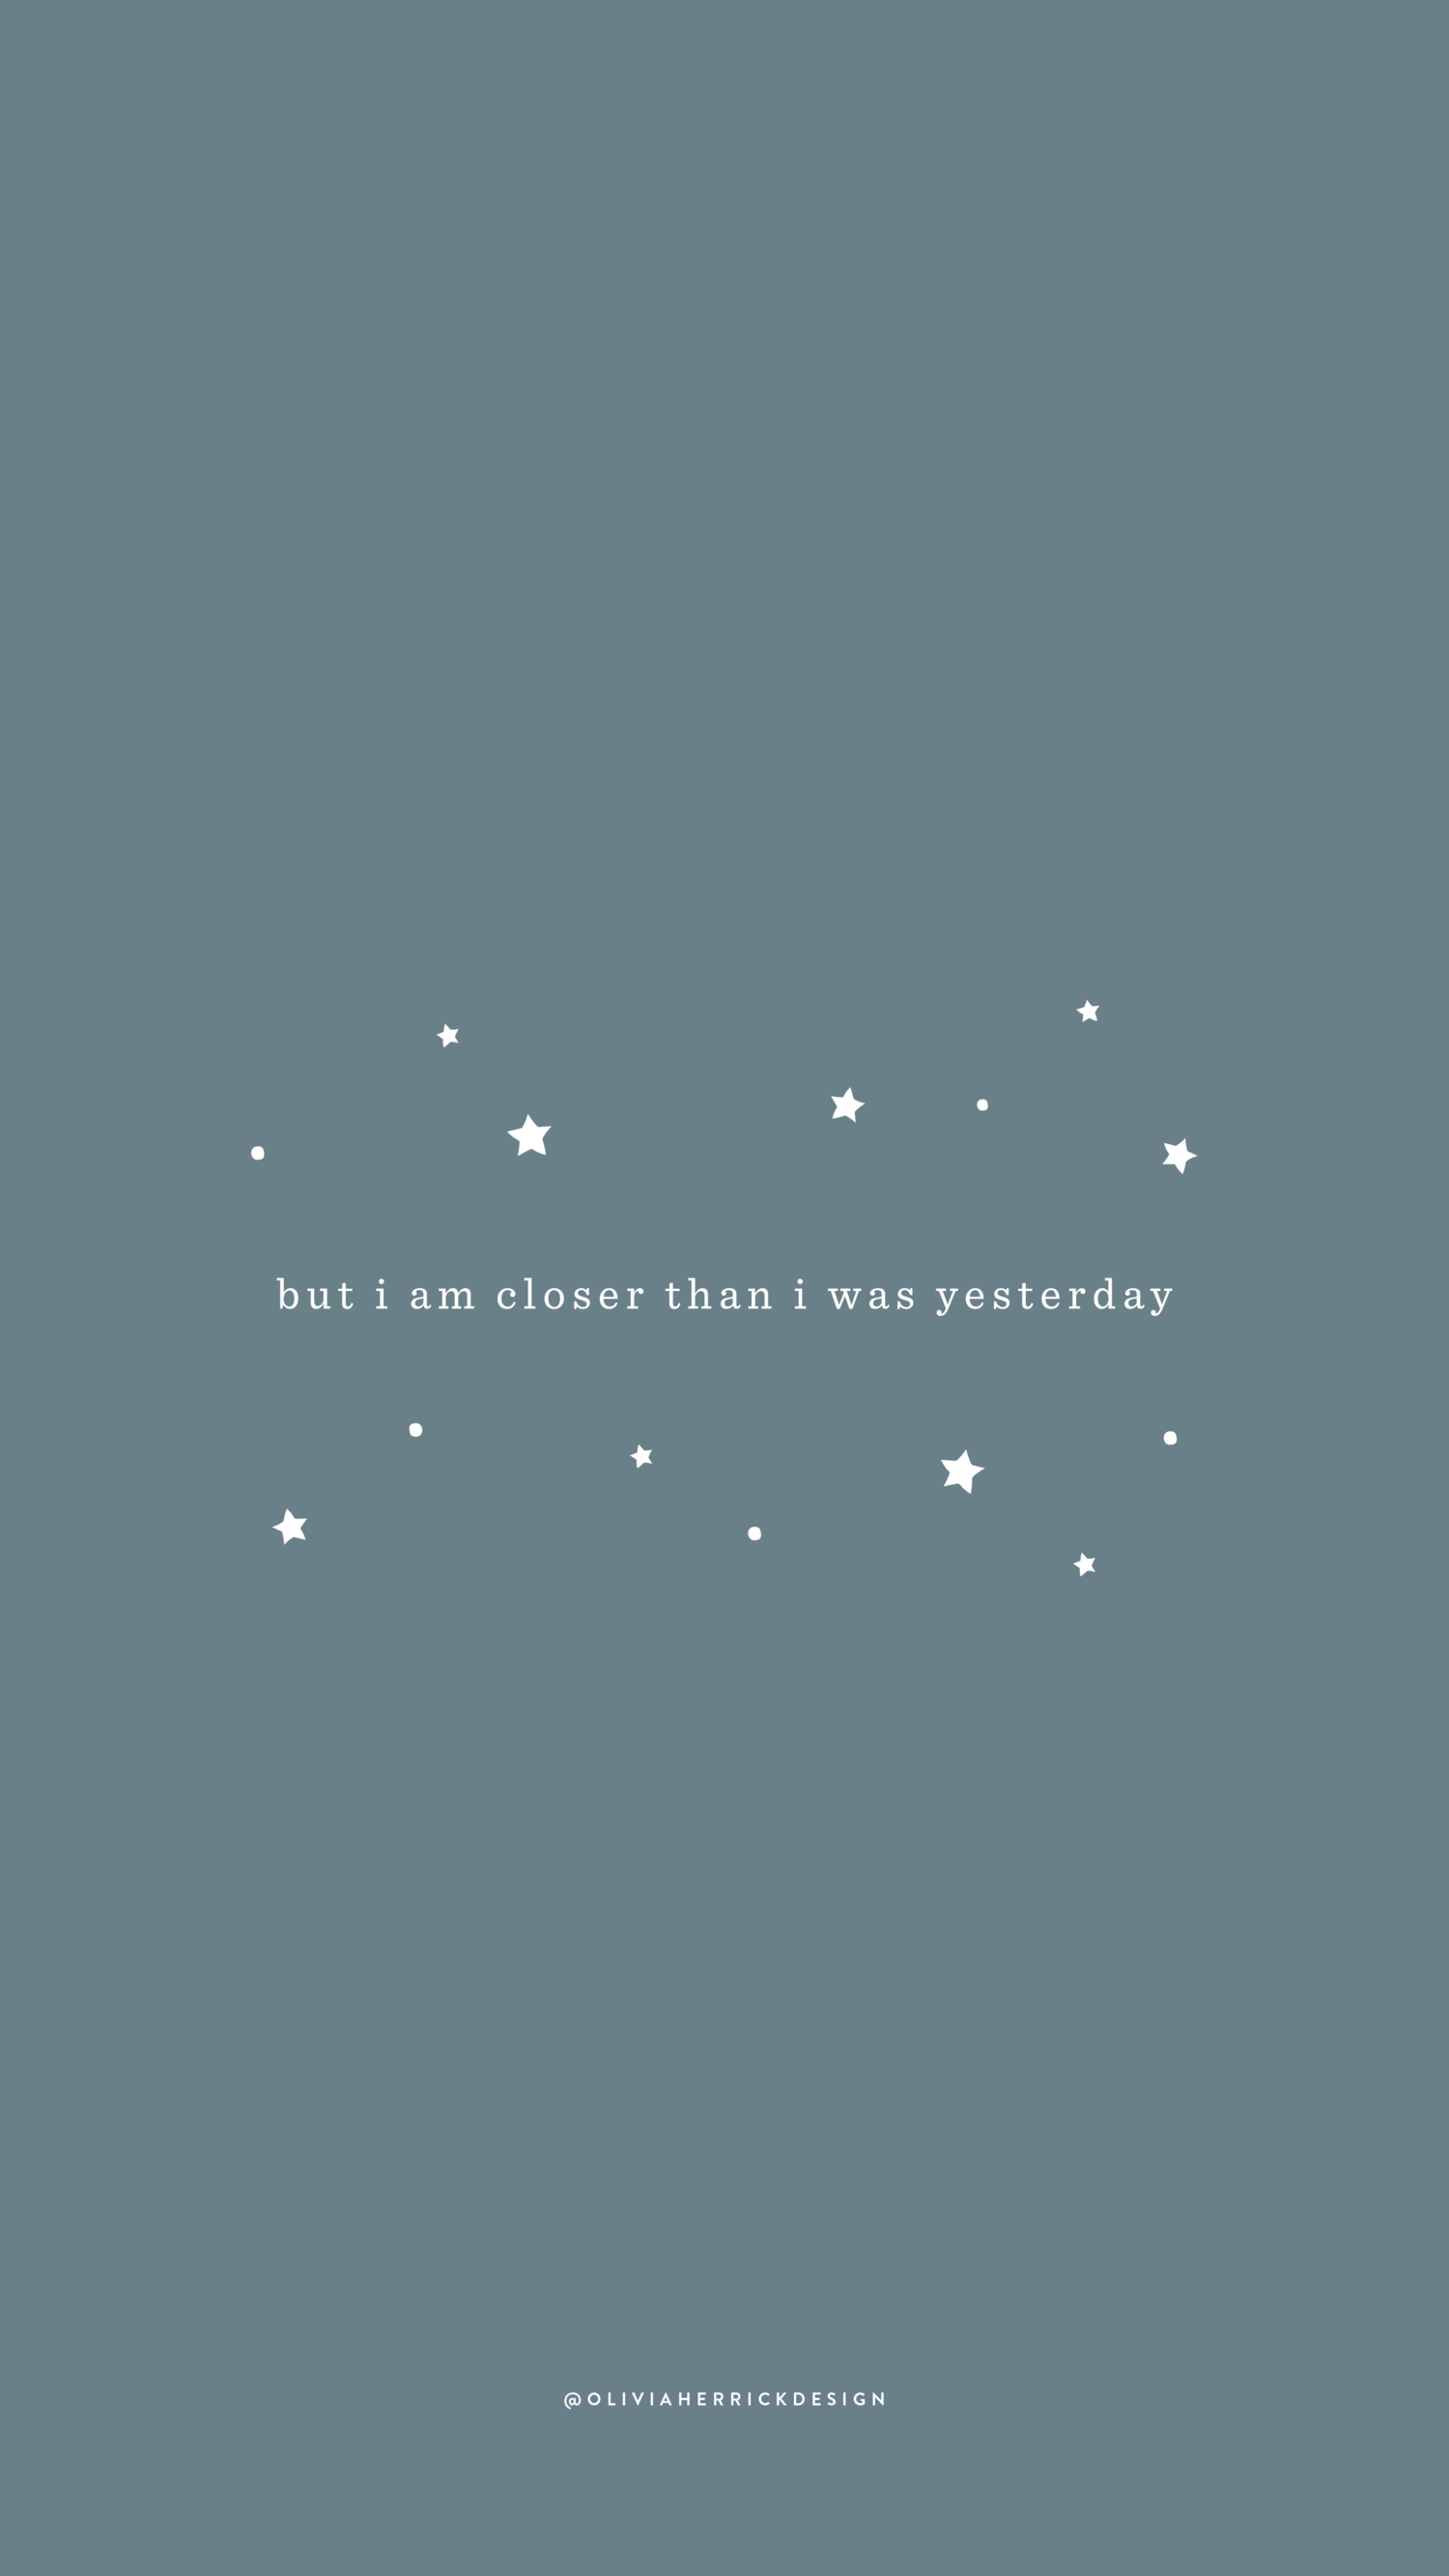 Free Phone Wallpaper: Closer Than I Was Yesterday